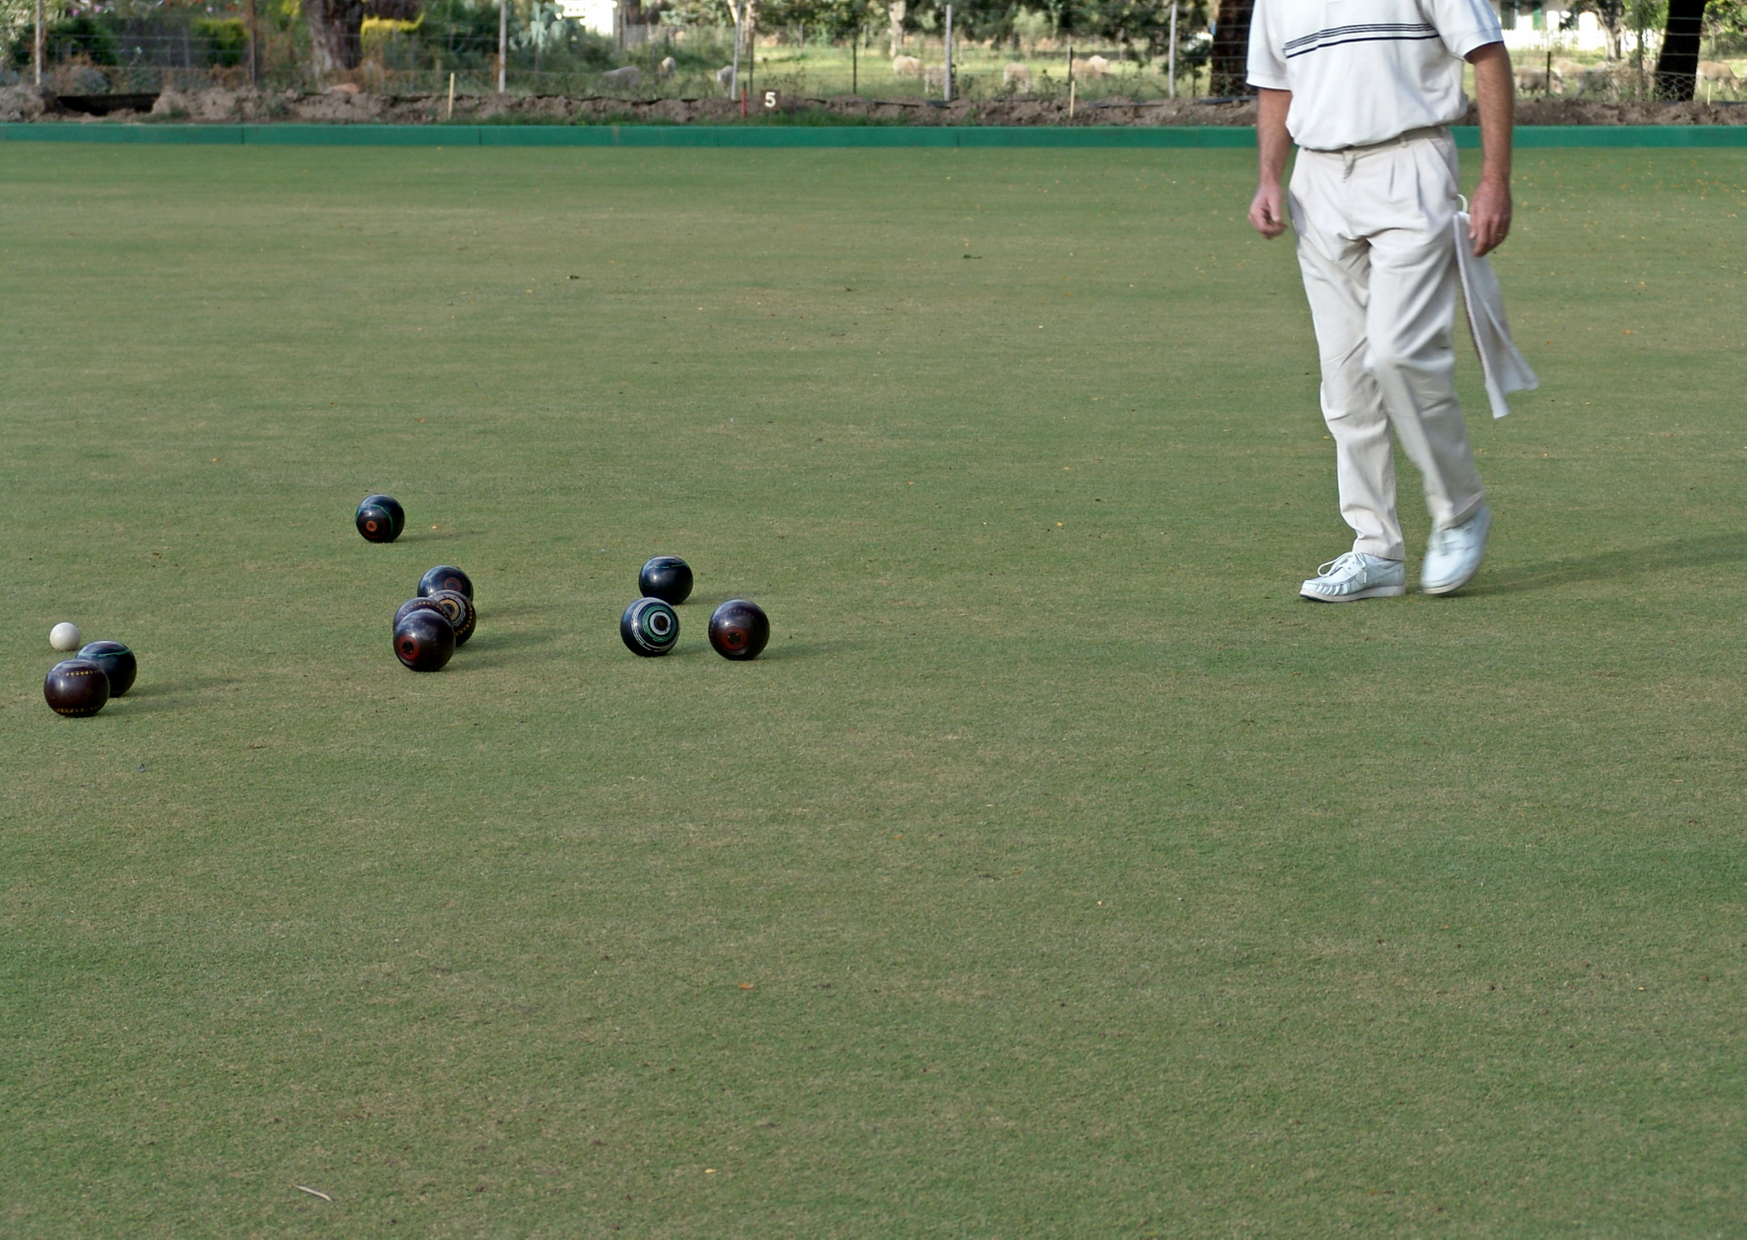 Scroungers lawn bowls